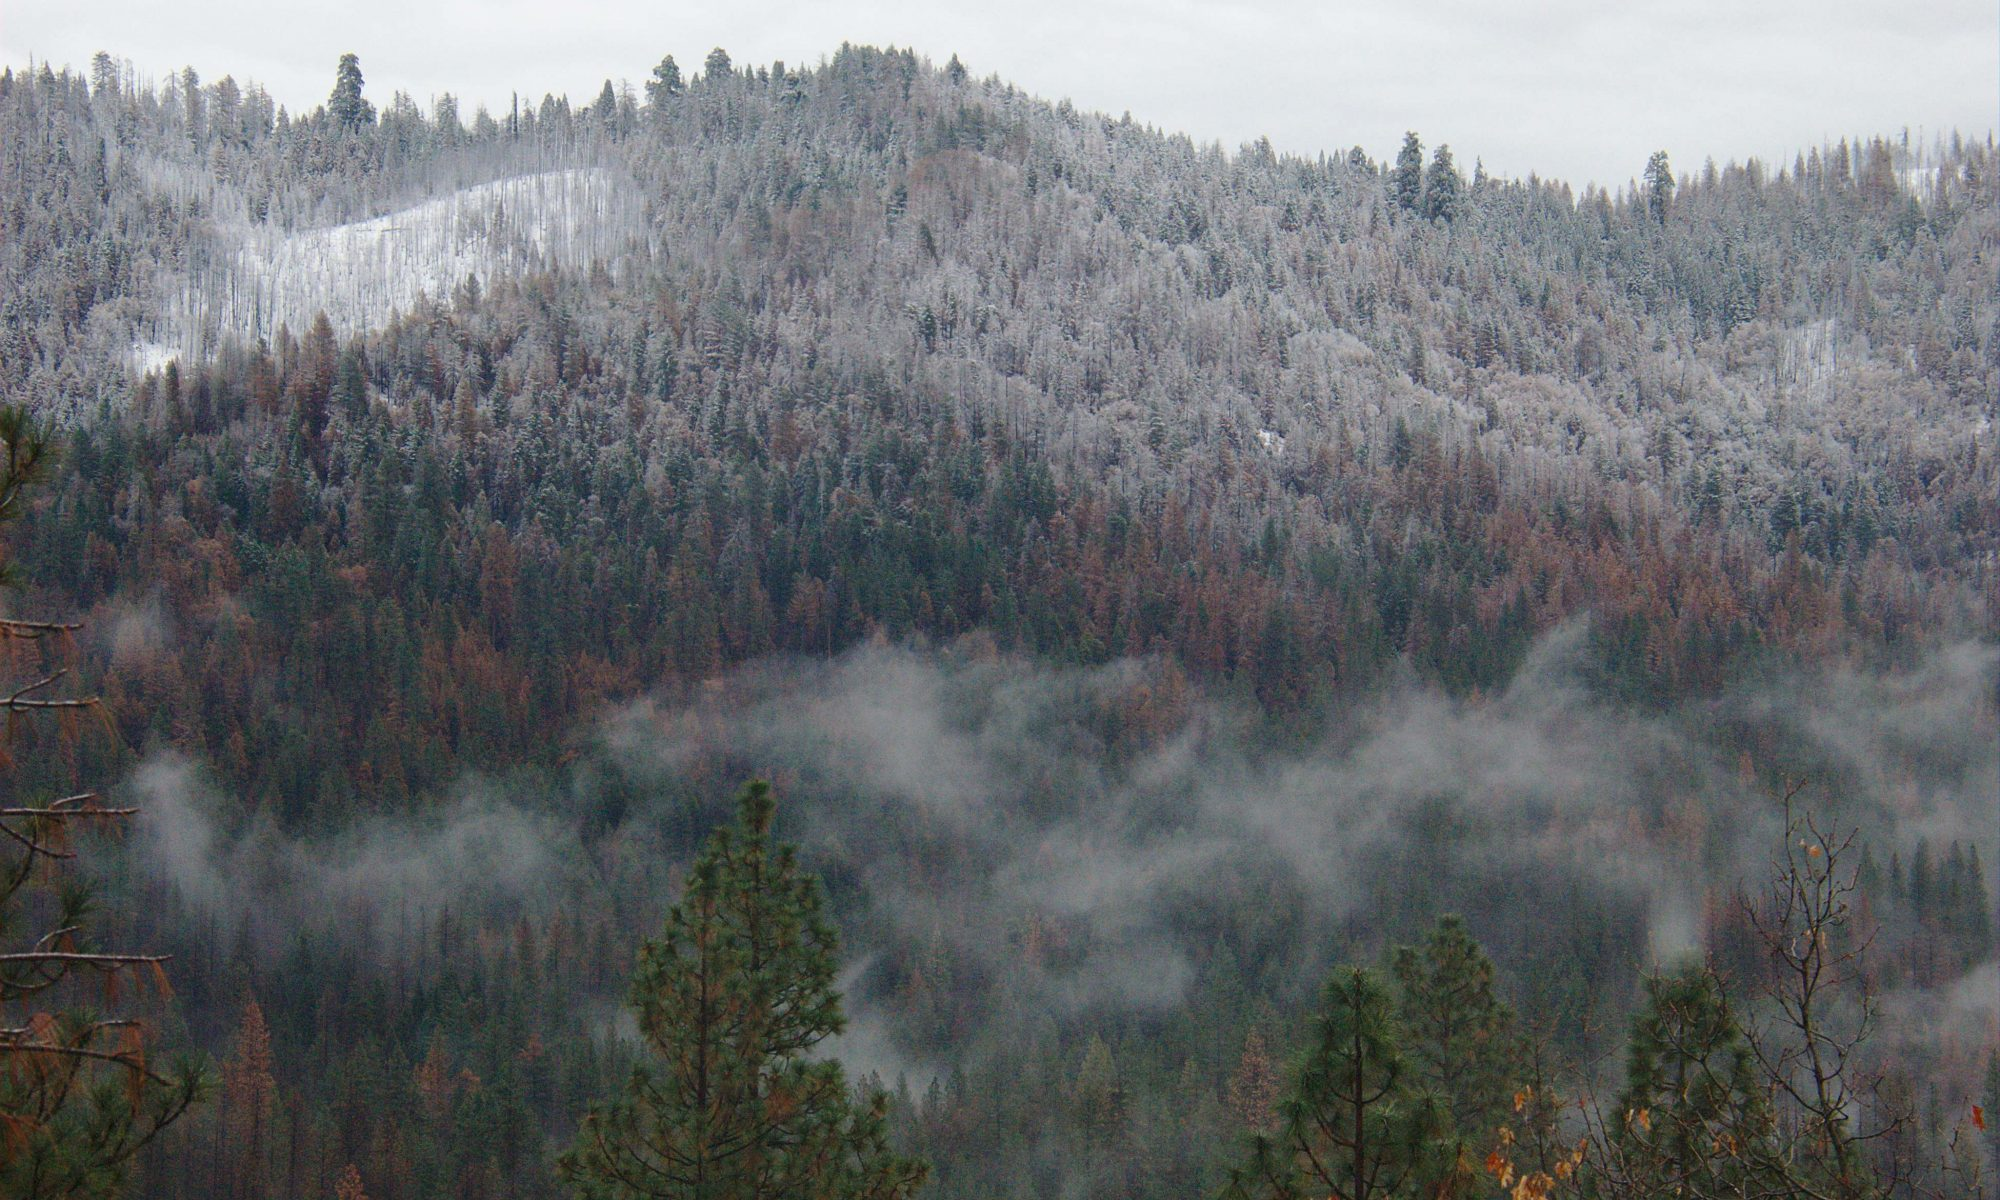 Image of clouds drifting past a forested hillside dusted with snow